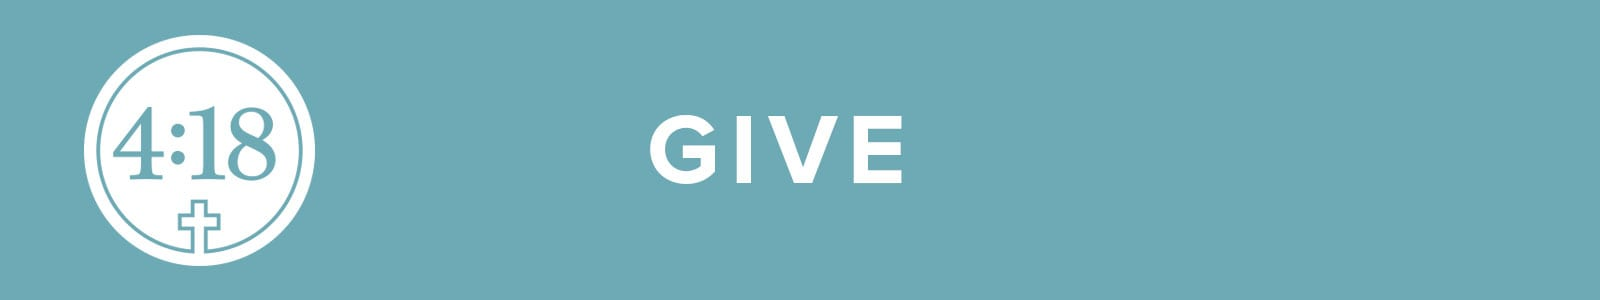 app give